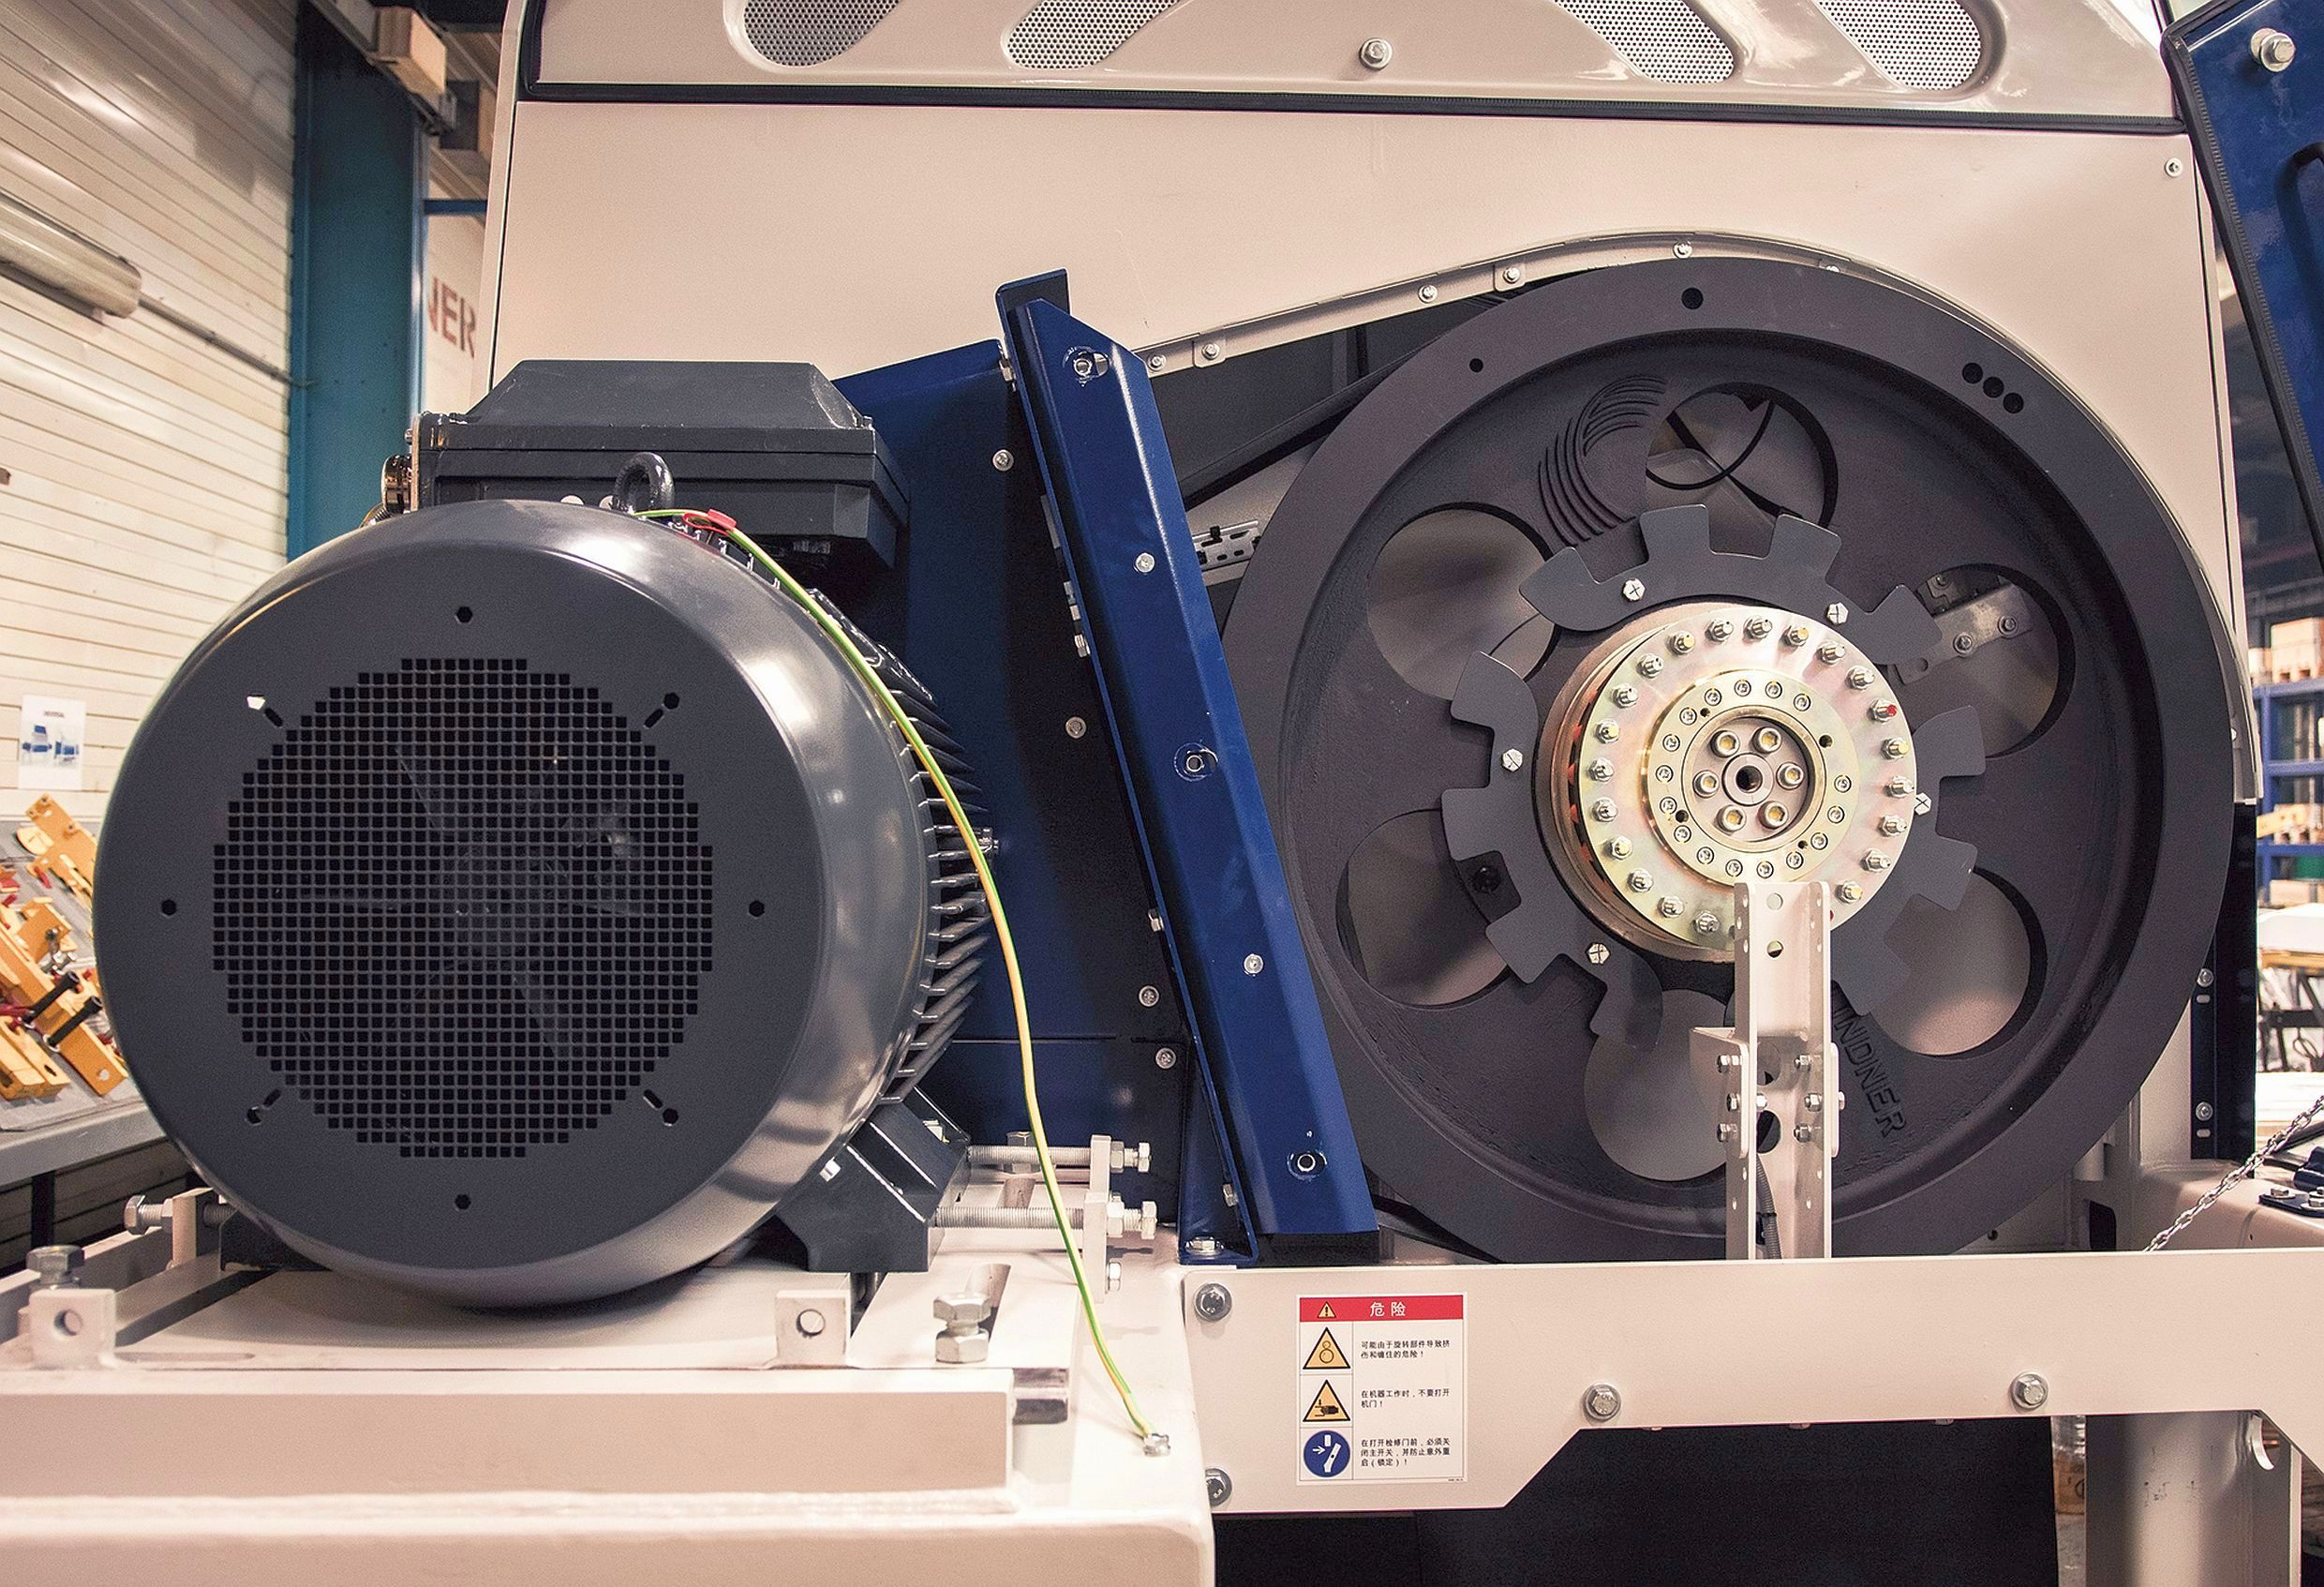 system units consisting of V-belt pulley and friction torque limiters